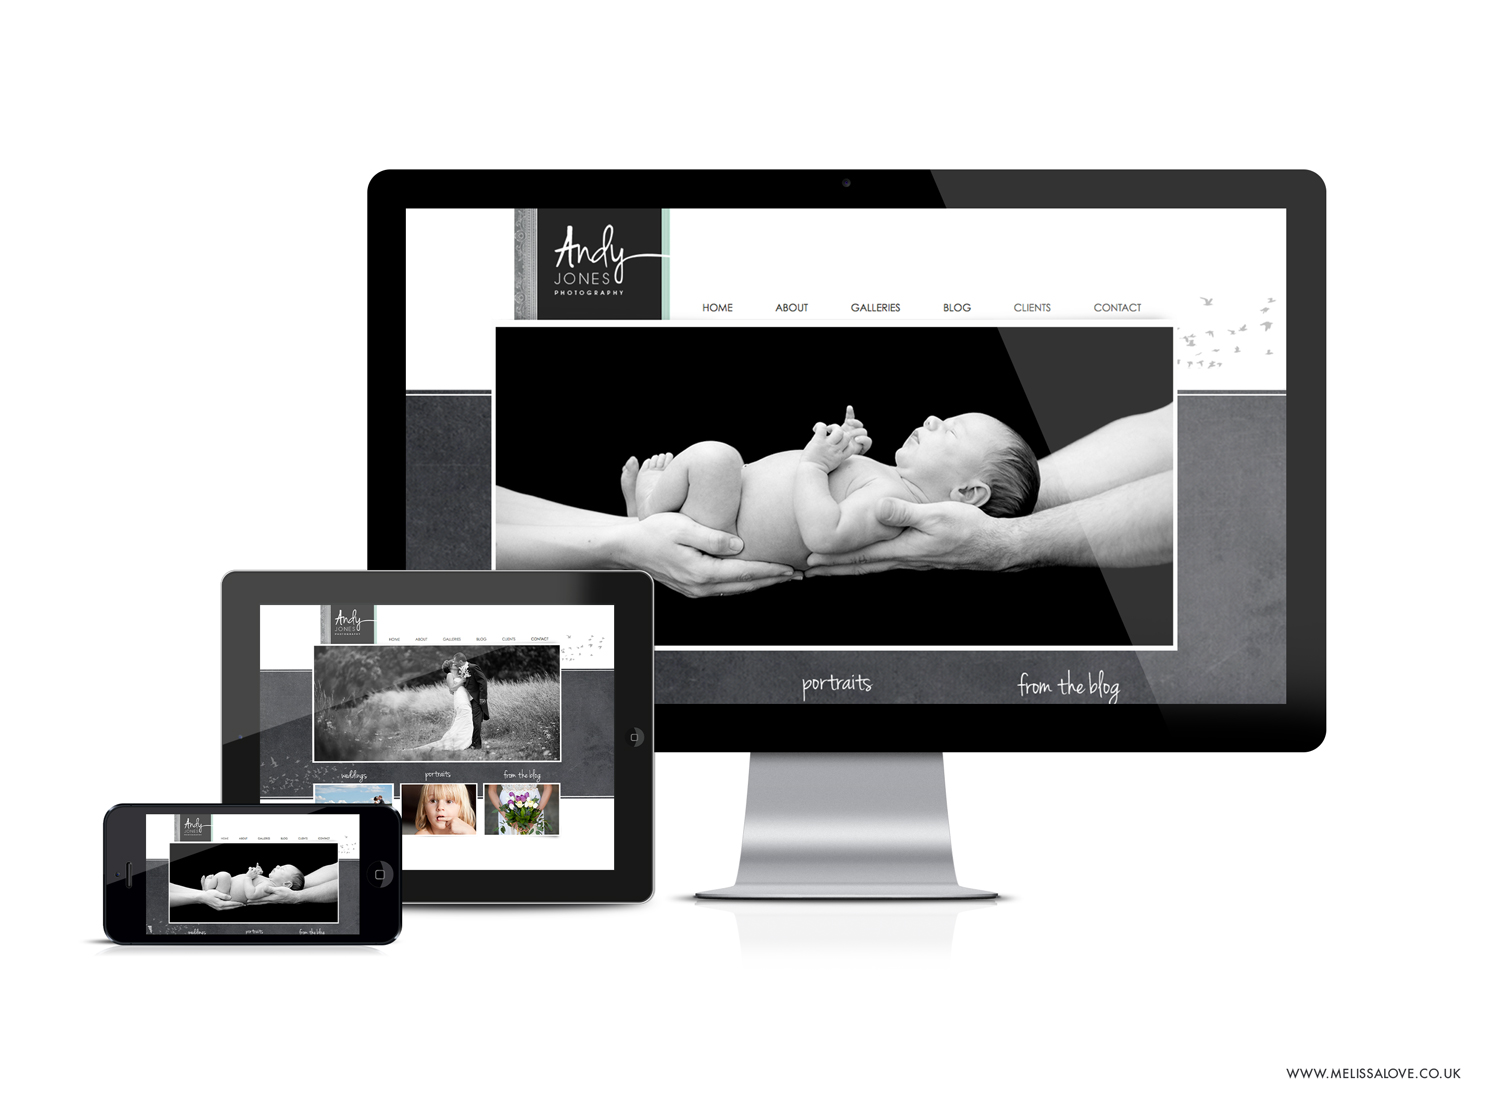 Andy-Jone-Site-Launch